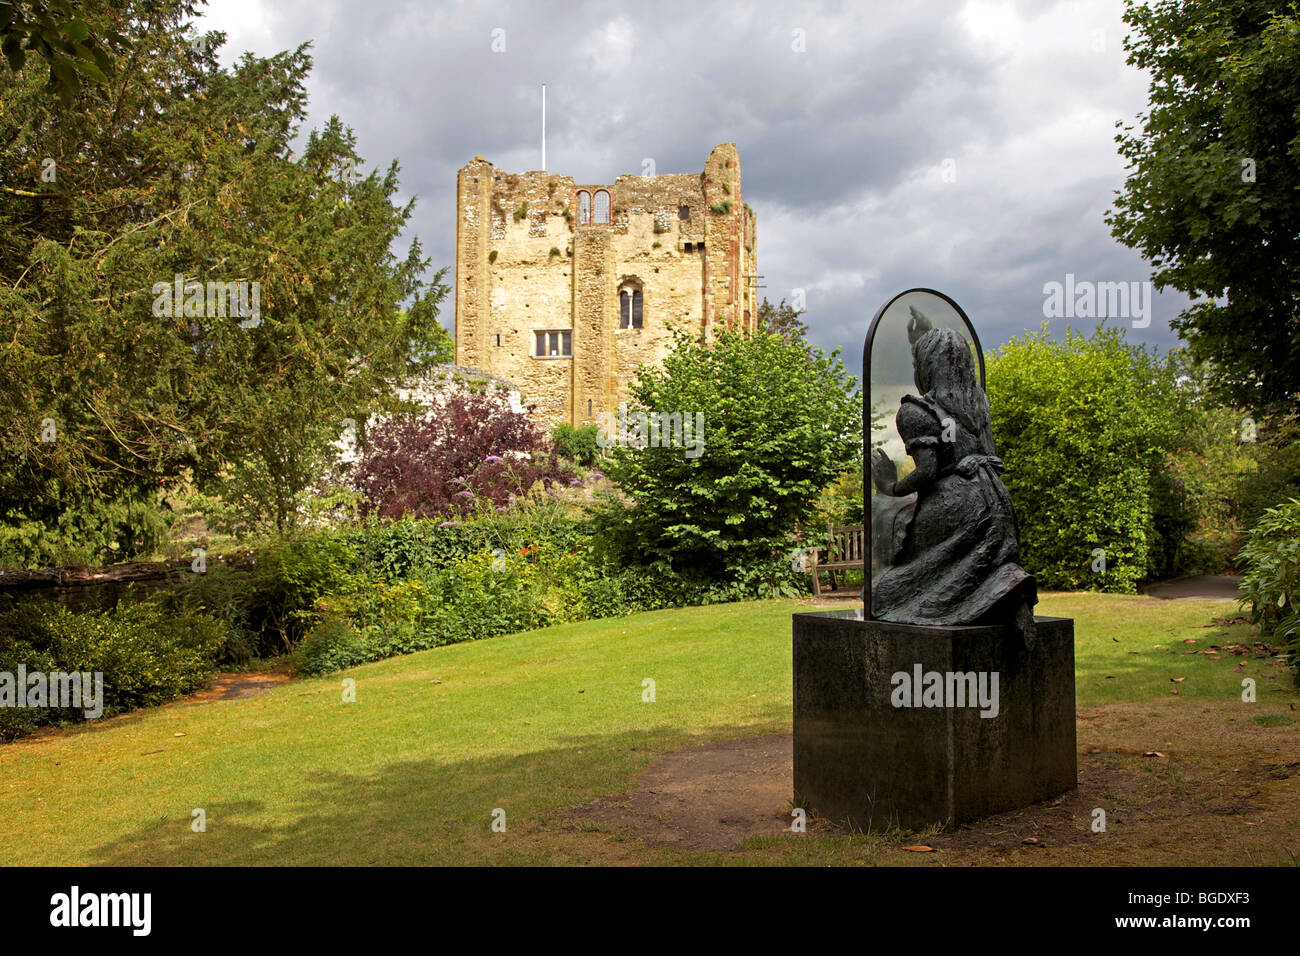 Alice Through The Looking Glass Statue In Castle Grounds